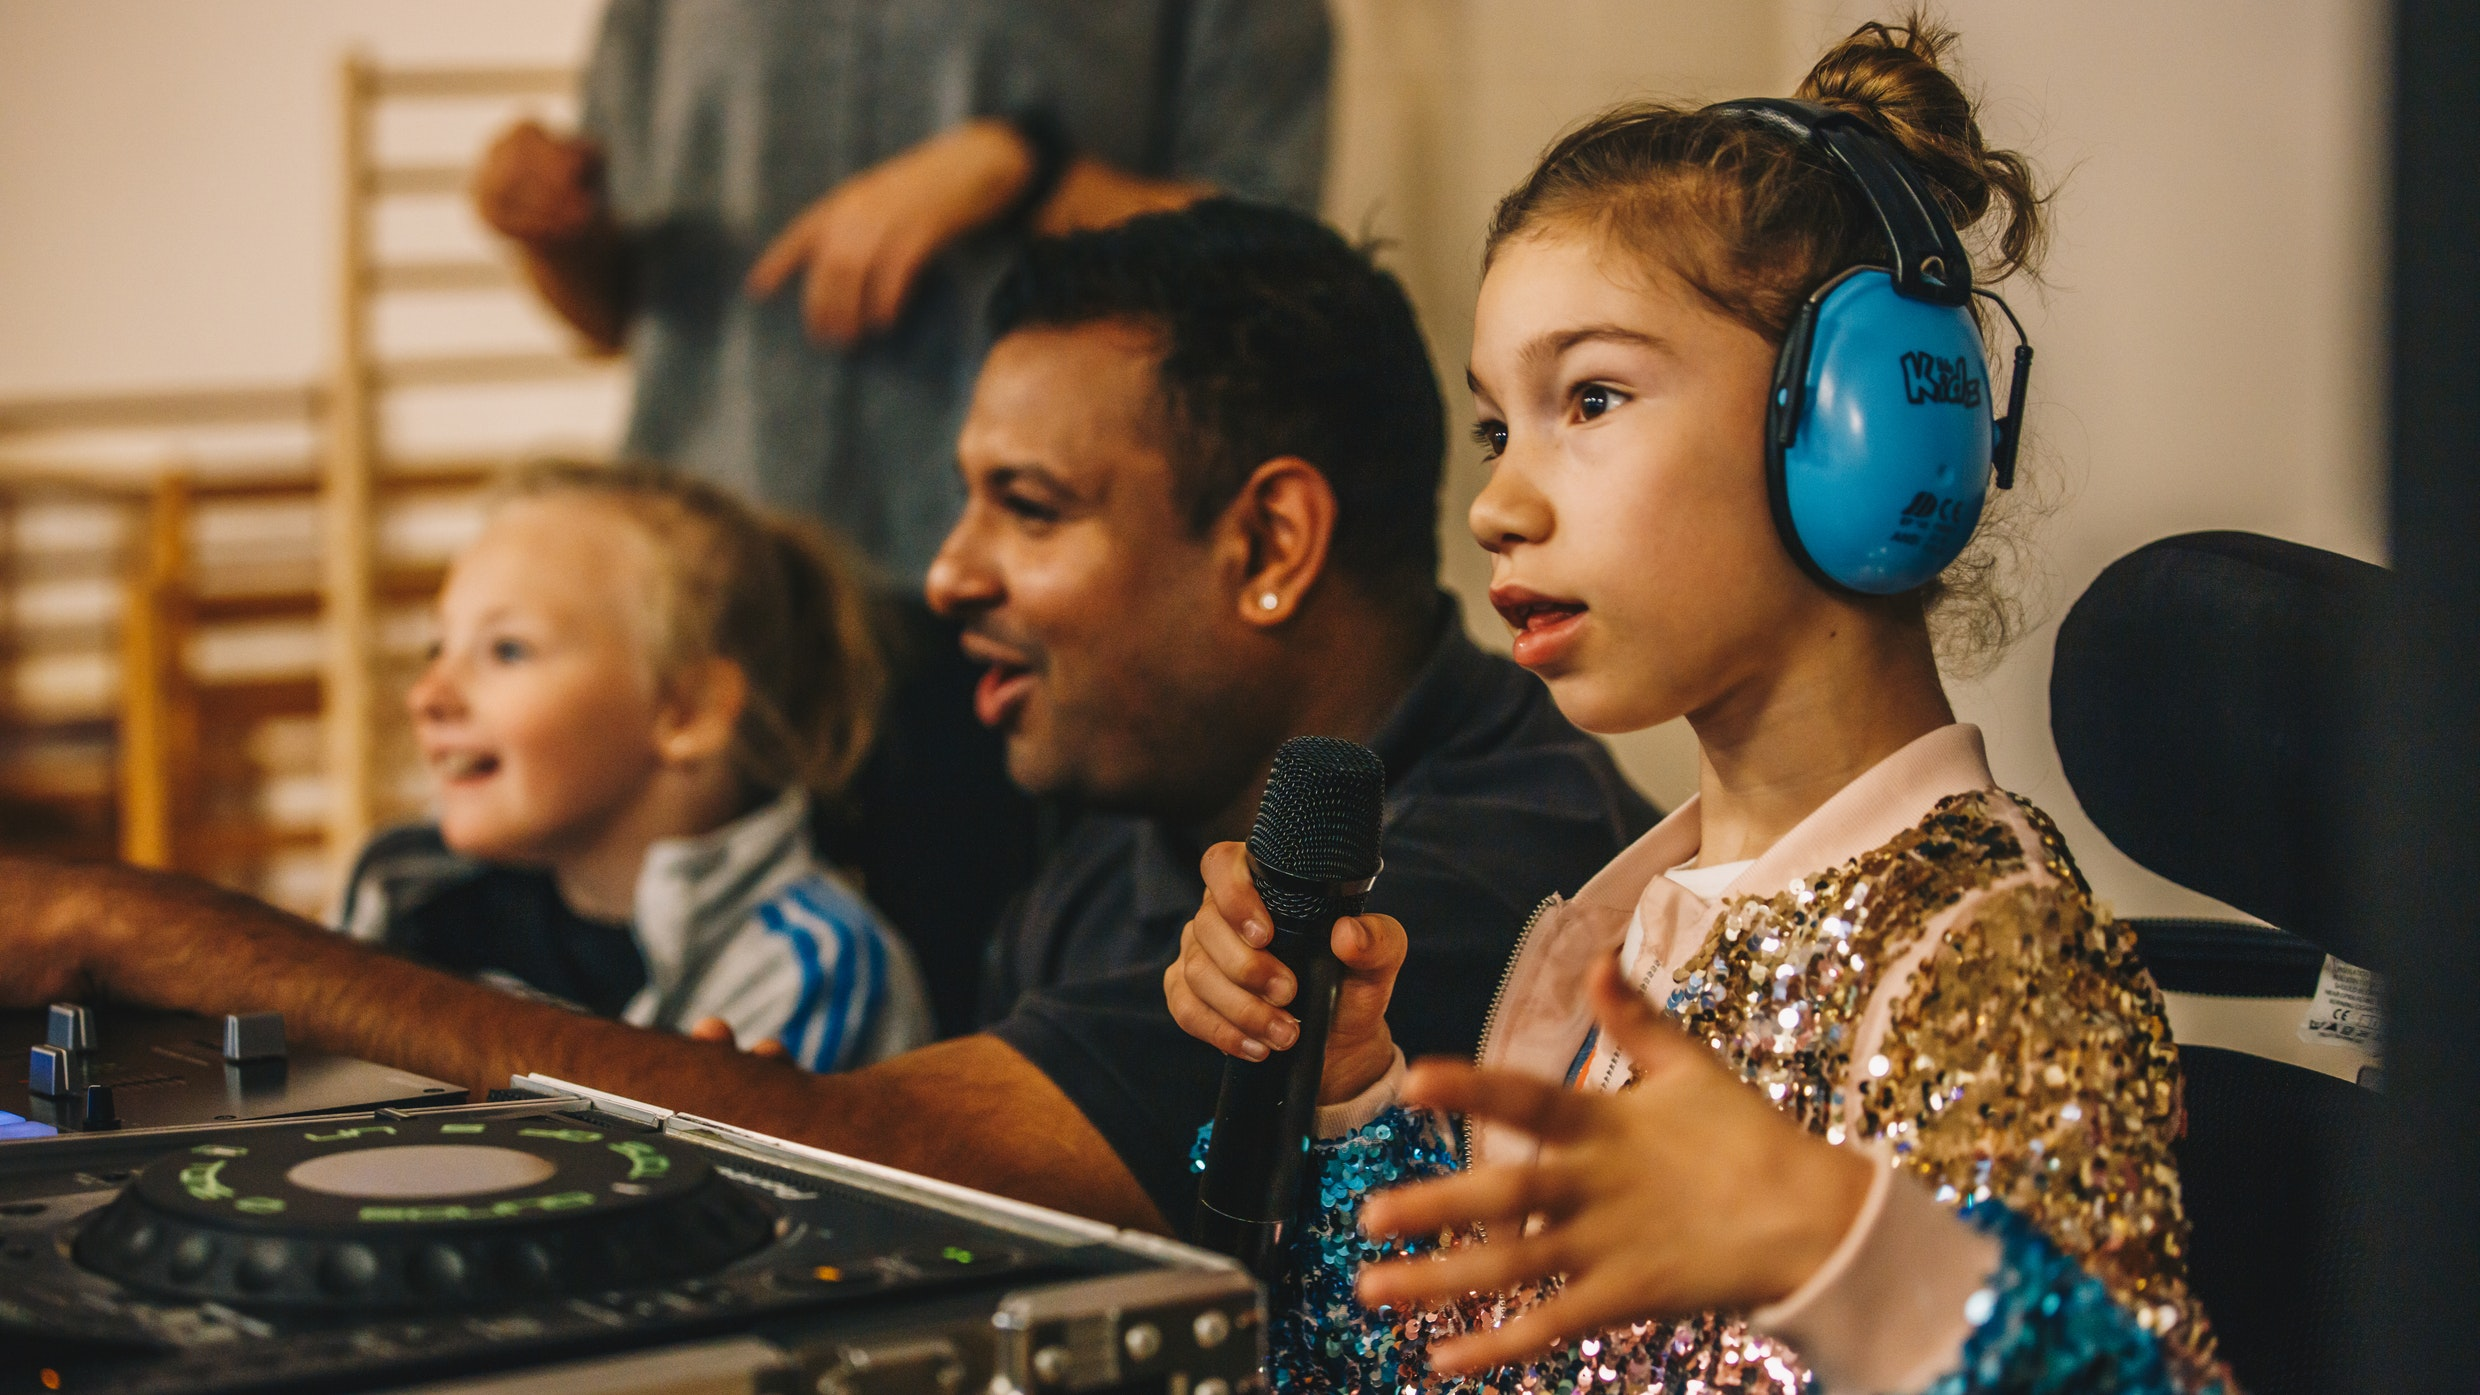 young girl with microphone